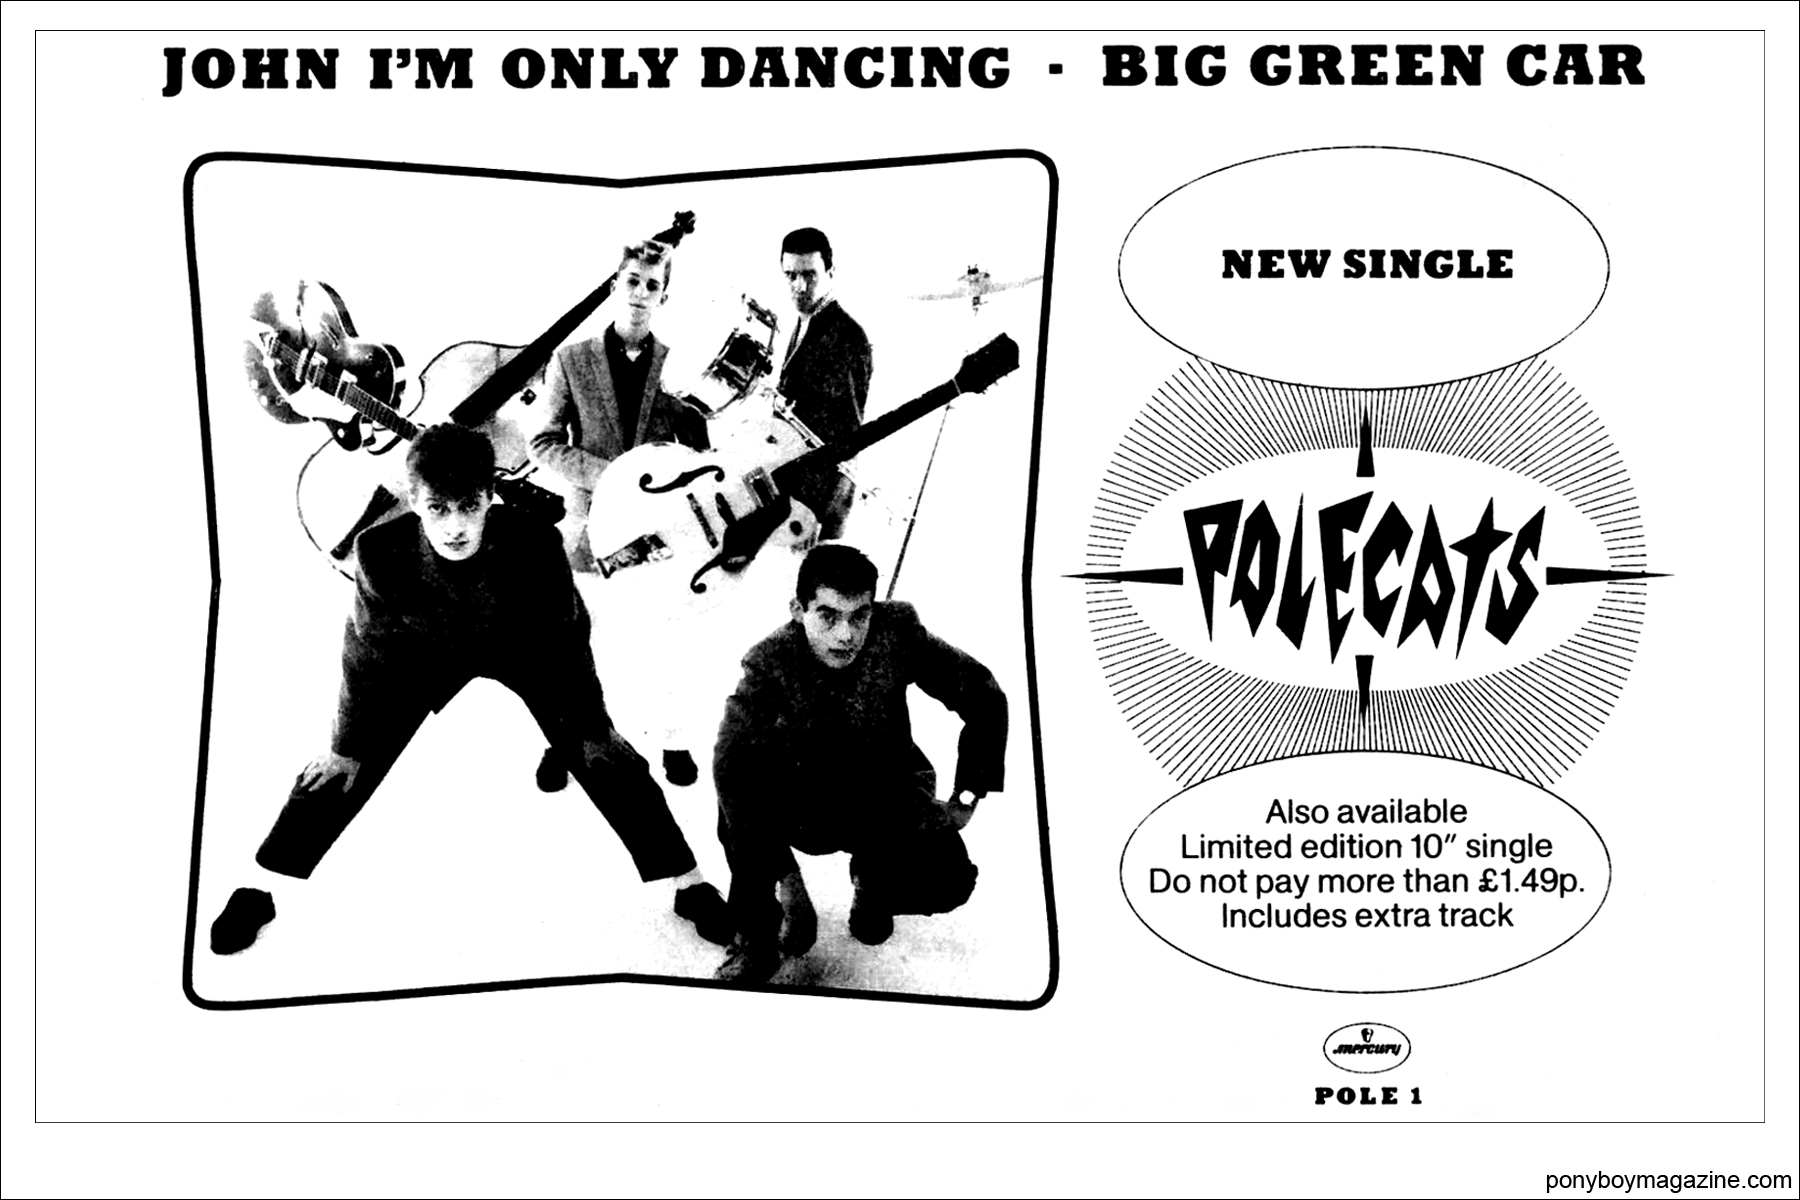 An old ad for the Polecats single